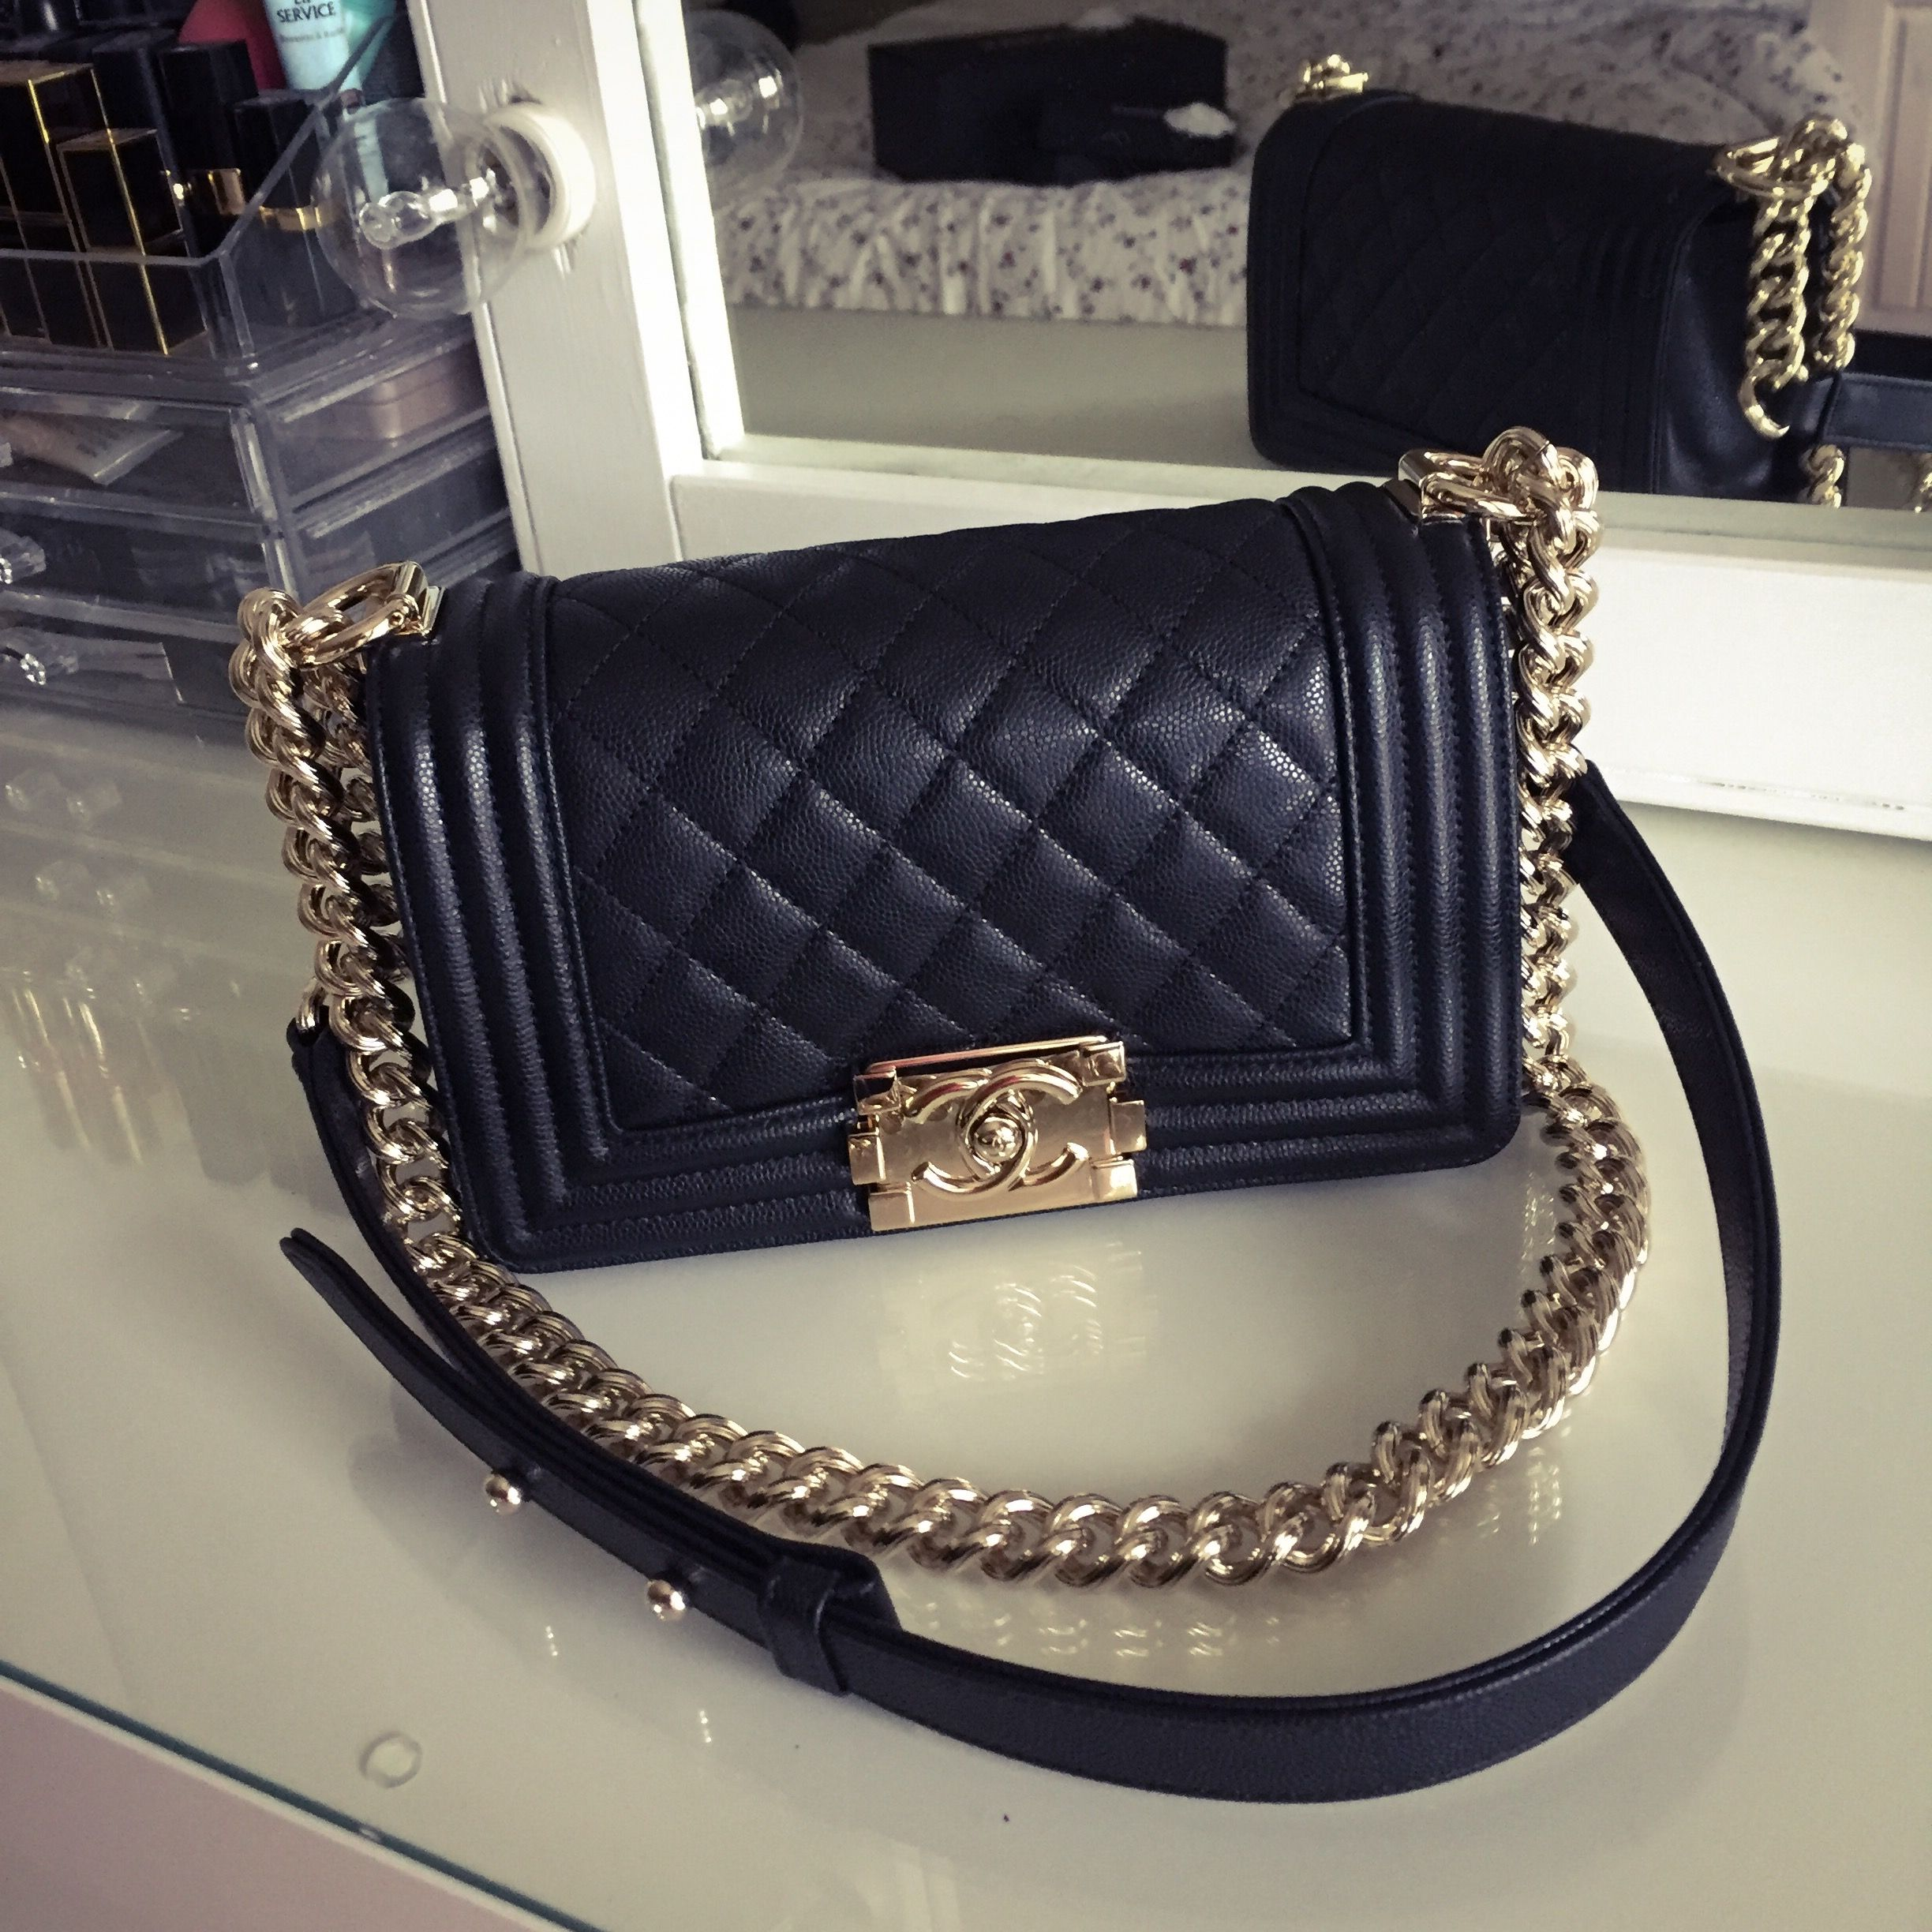 08366290542b Le Boy Chanel in black caviar with shiny gold hardware | Bags I like ...